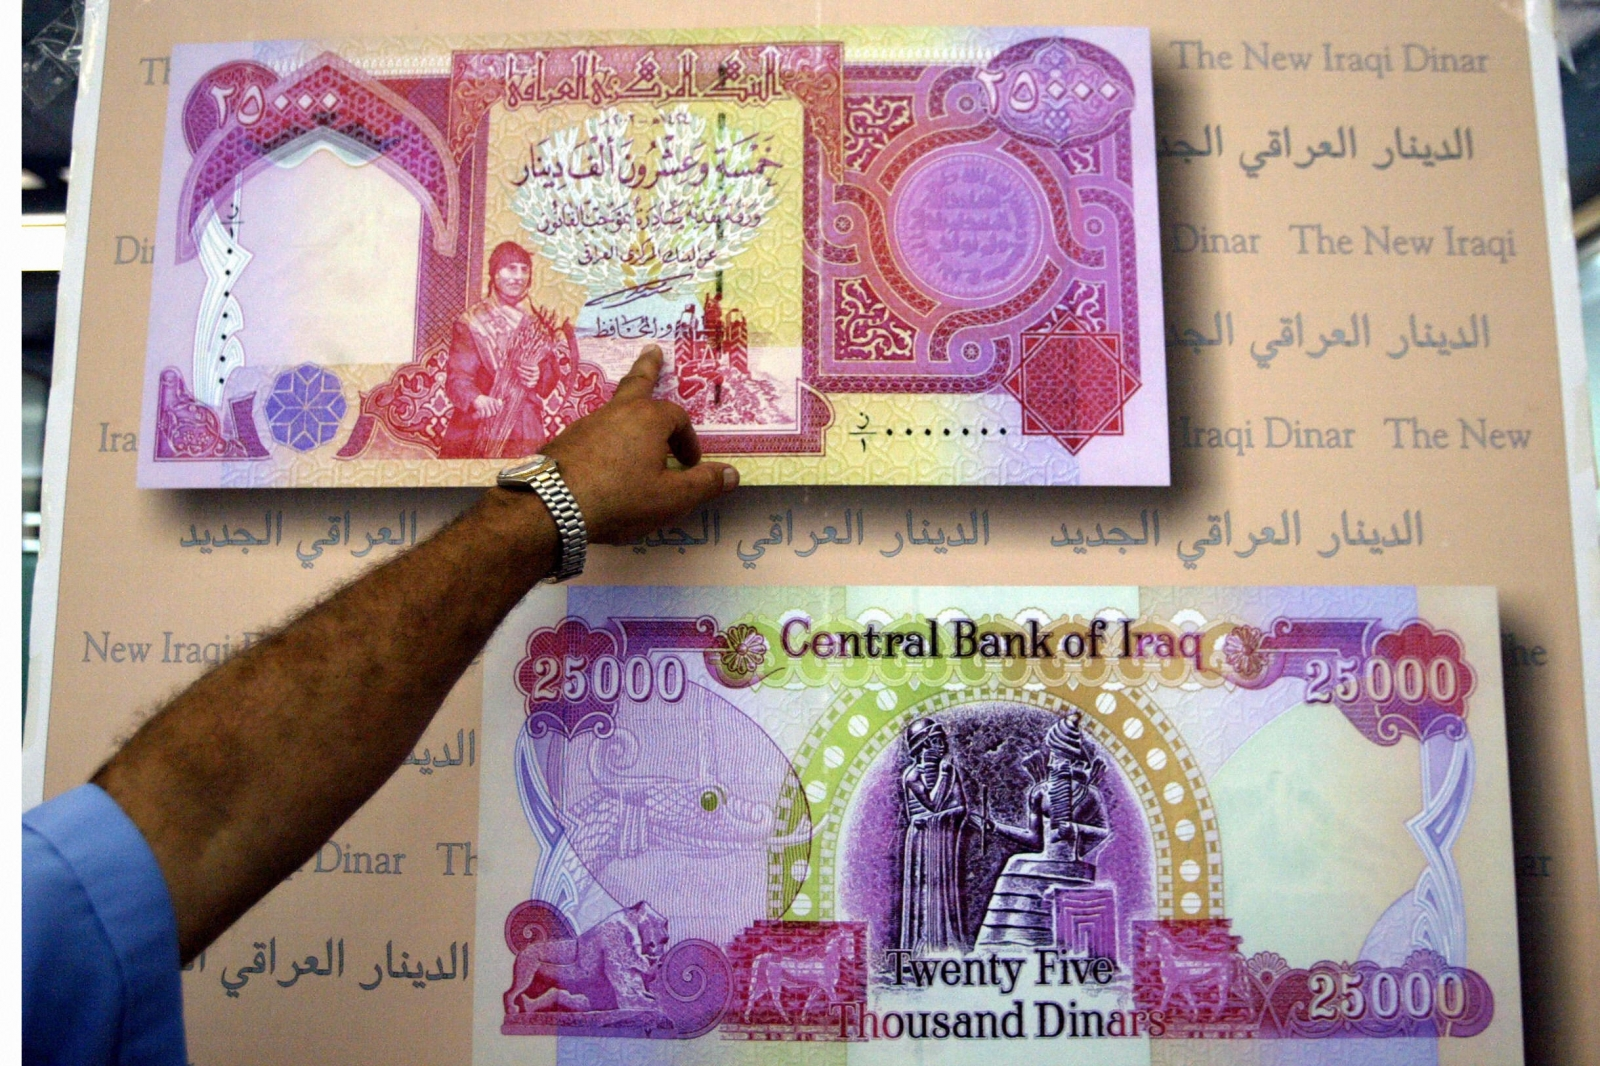 how to buy iraqi bonds